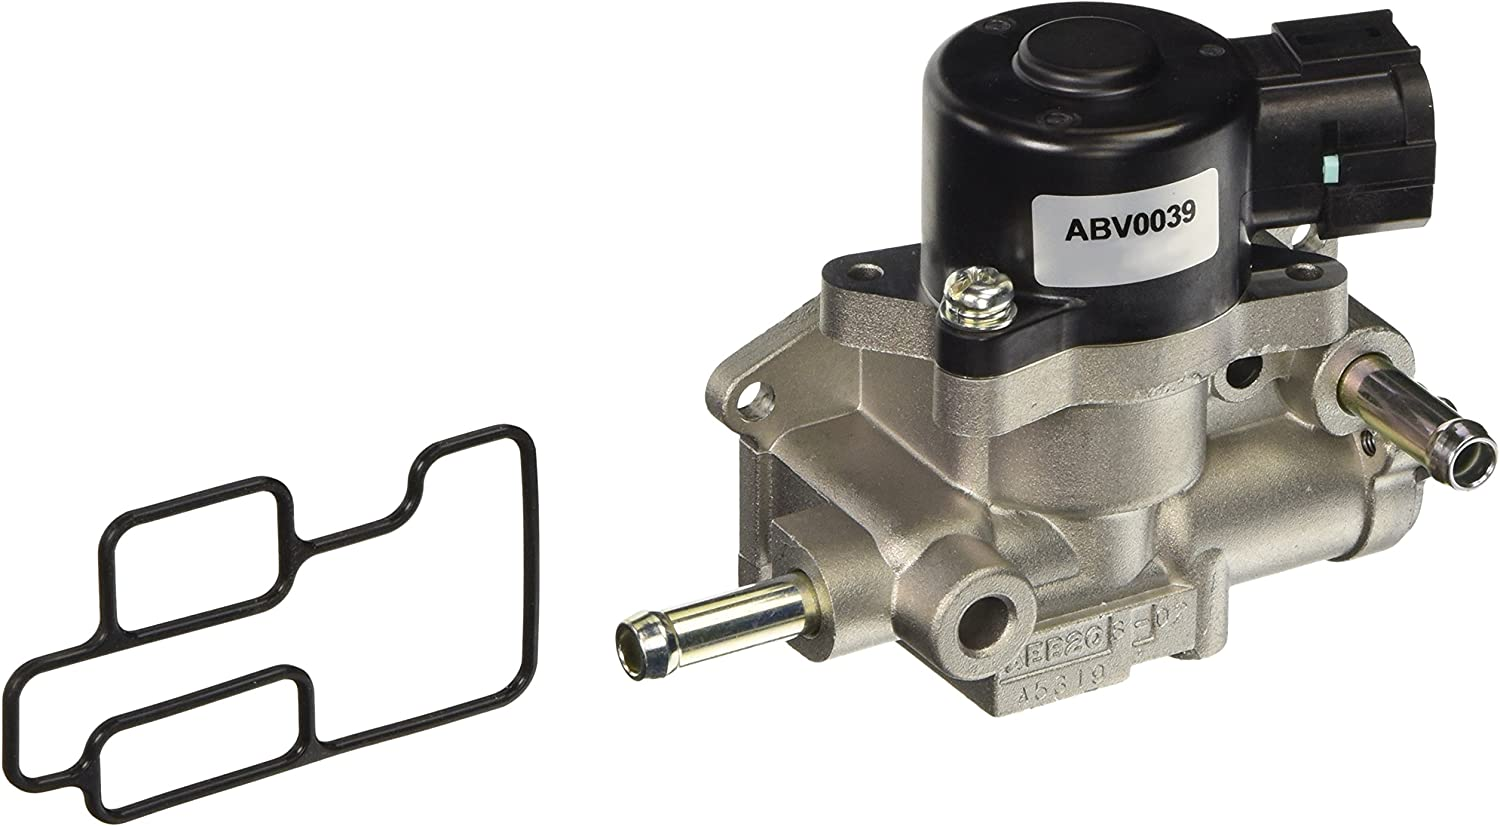 Standard Motor Products AC278 Idle Air Control Valve 2021 model Max 66% OFF